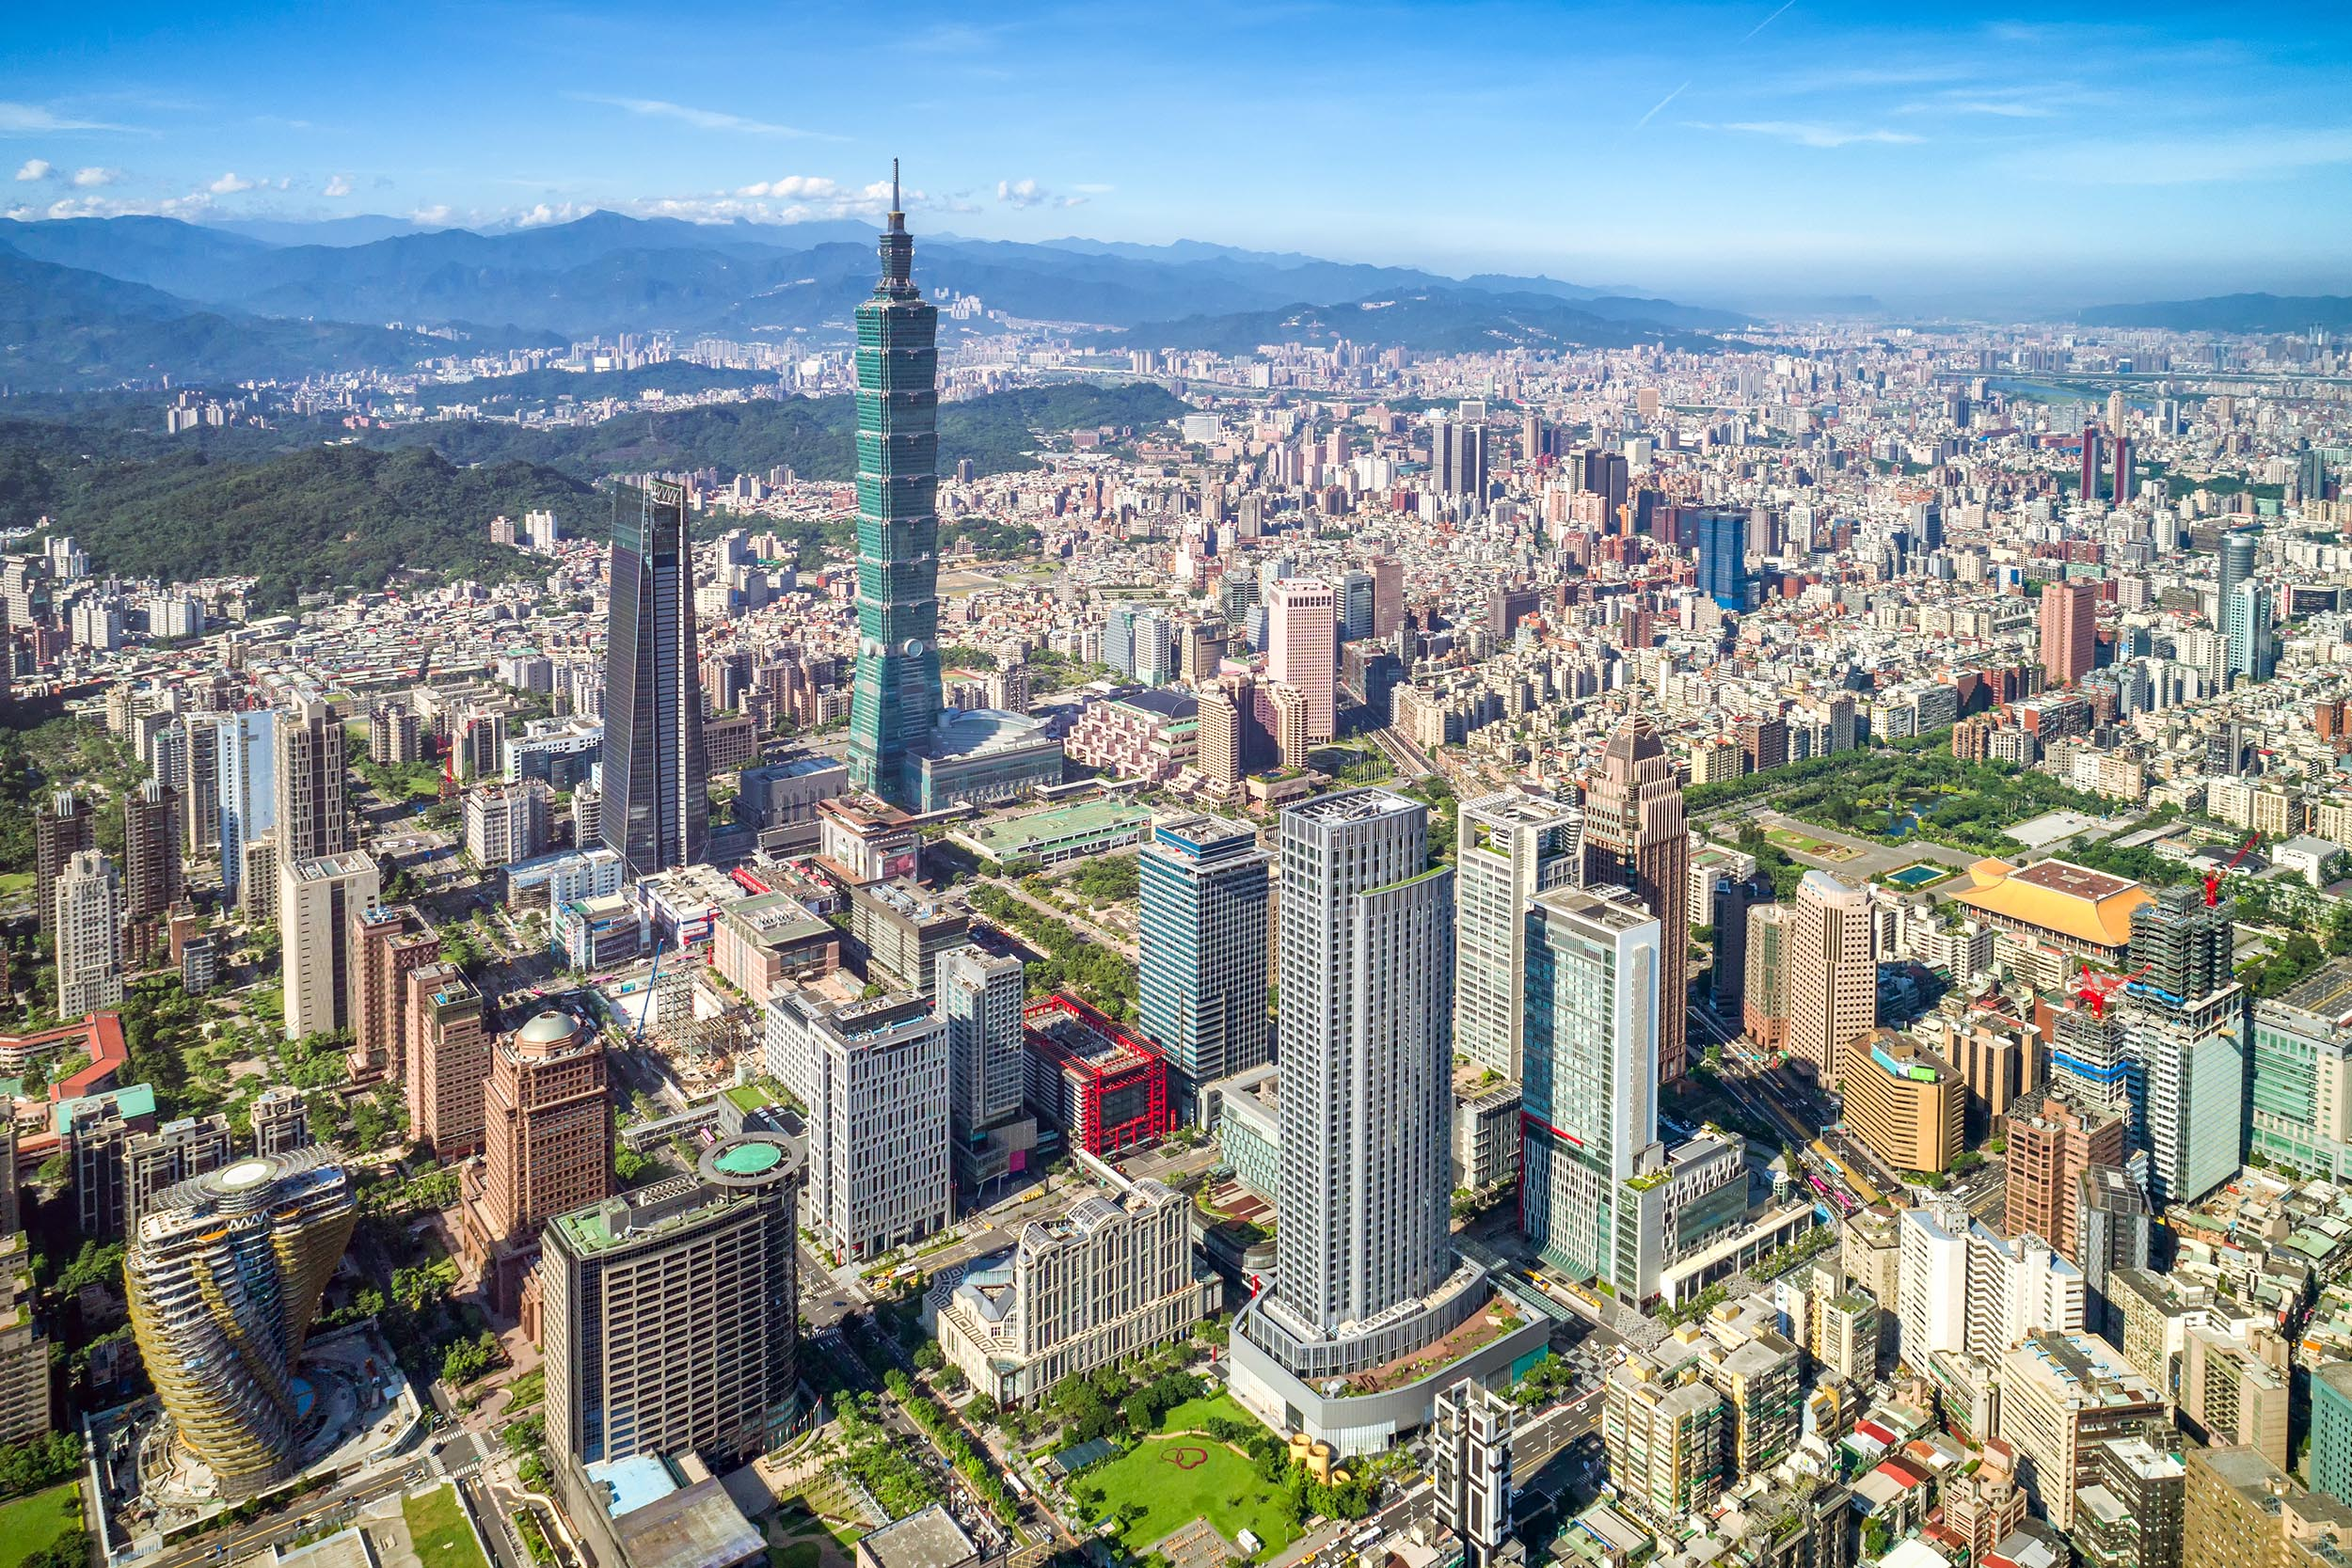 Beautiful scenery of Taipei City with lardge modern builings and skyscrapers   Taipei 101 in Xinyi District, Taipei, Taiwan; Shutterstock ID 750554854; Purchase Order: -